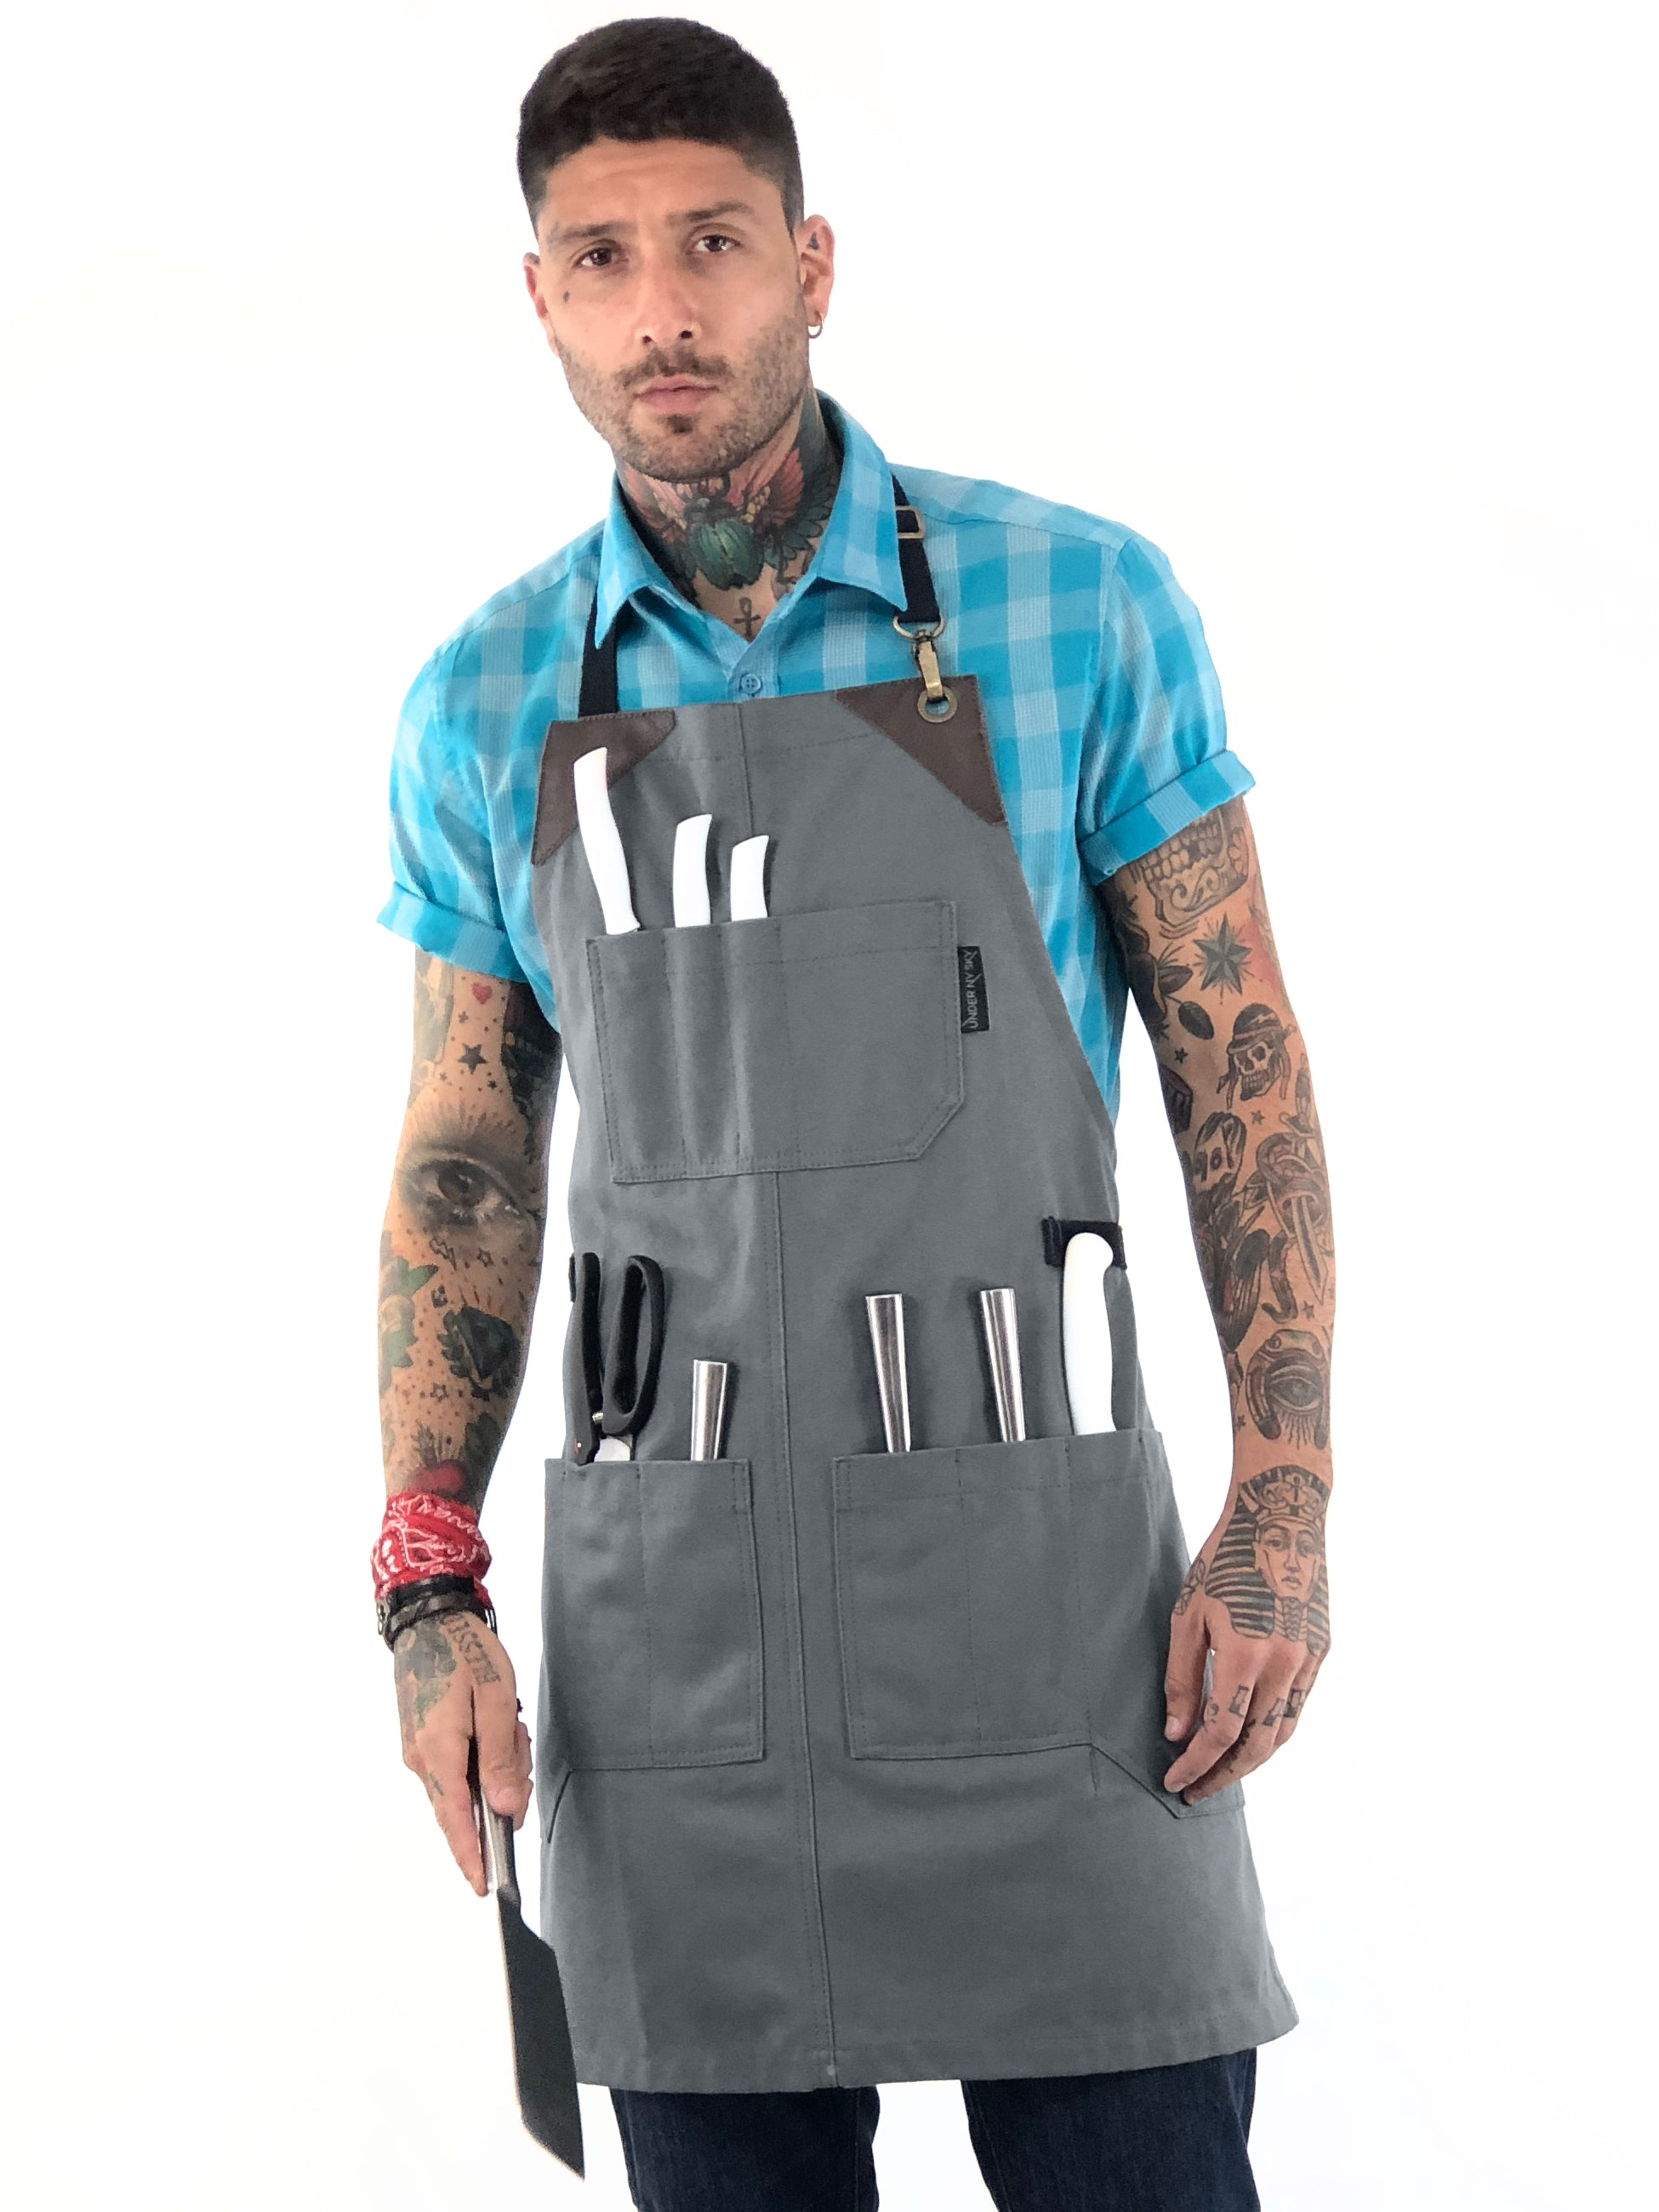 Knife-Roll Apron - Gray Canvas